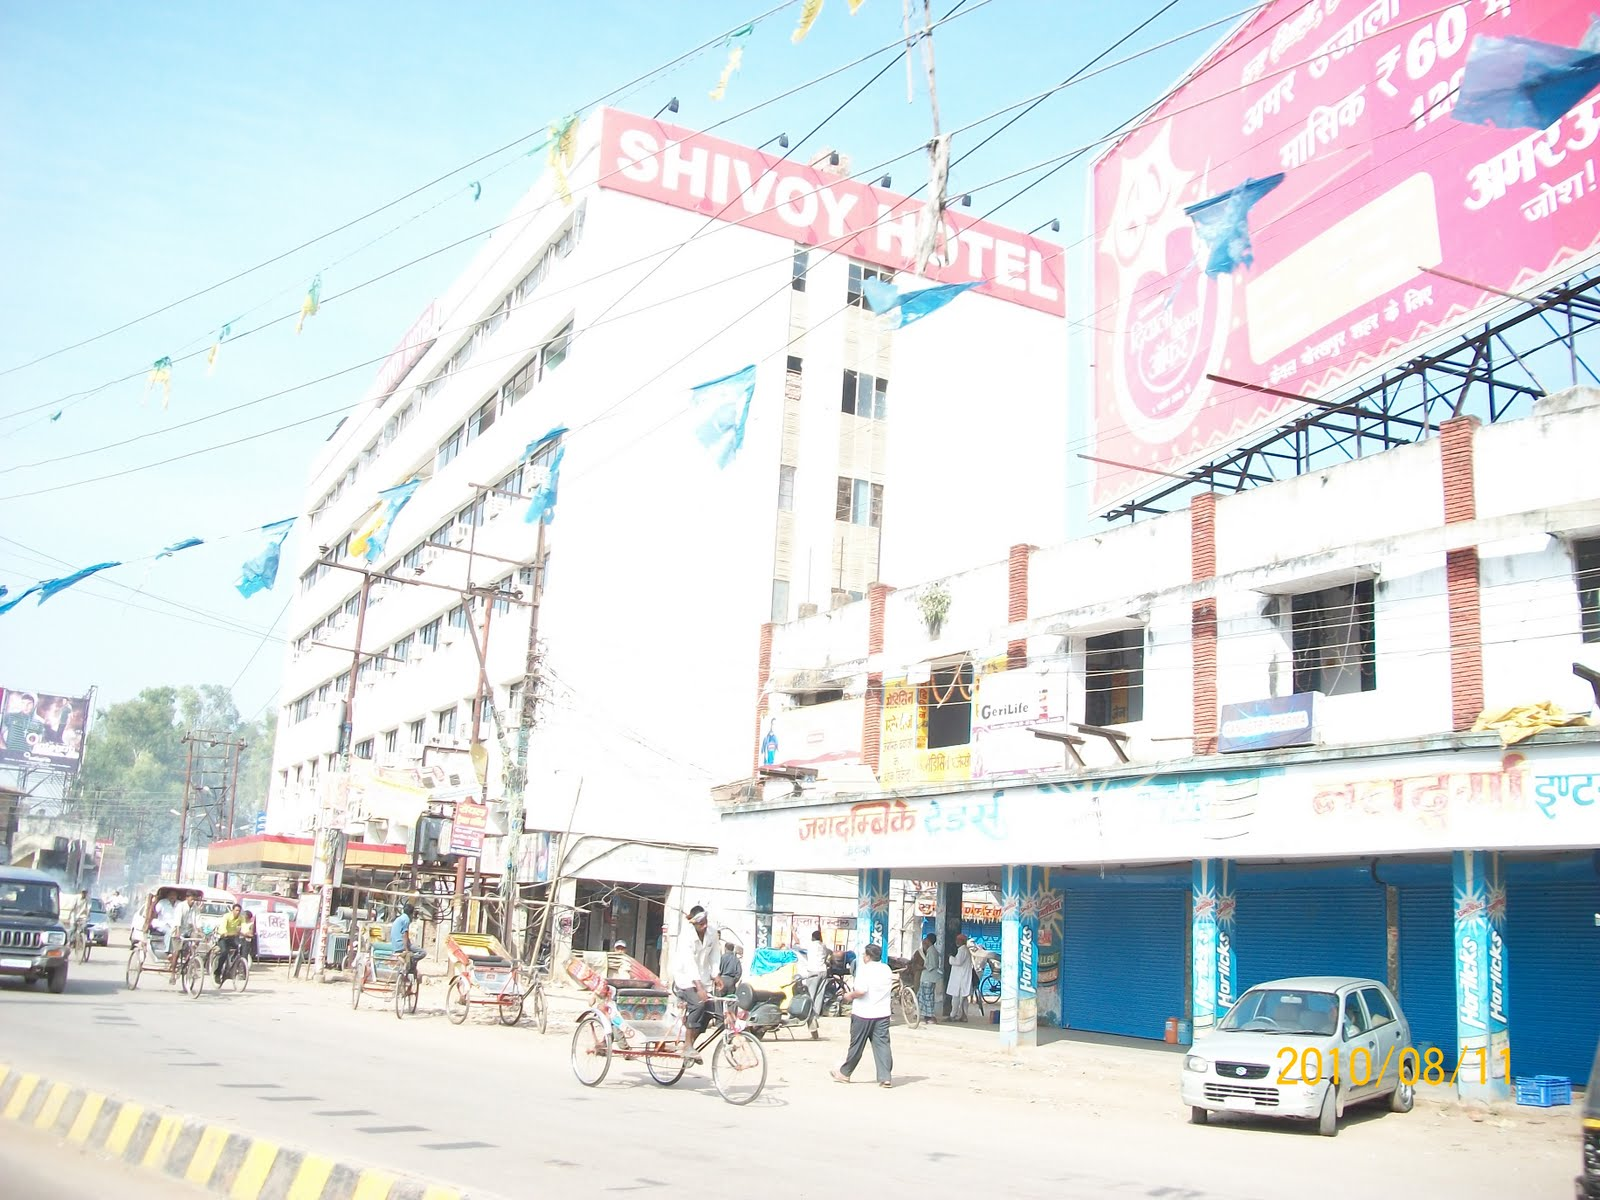 gorakhpur city Get latest & exclusive gorakhpur news updates & stories explore photos & videos on gorakhpur also get news from india and world including business, cricket, technology, sports, politics.